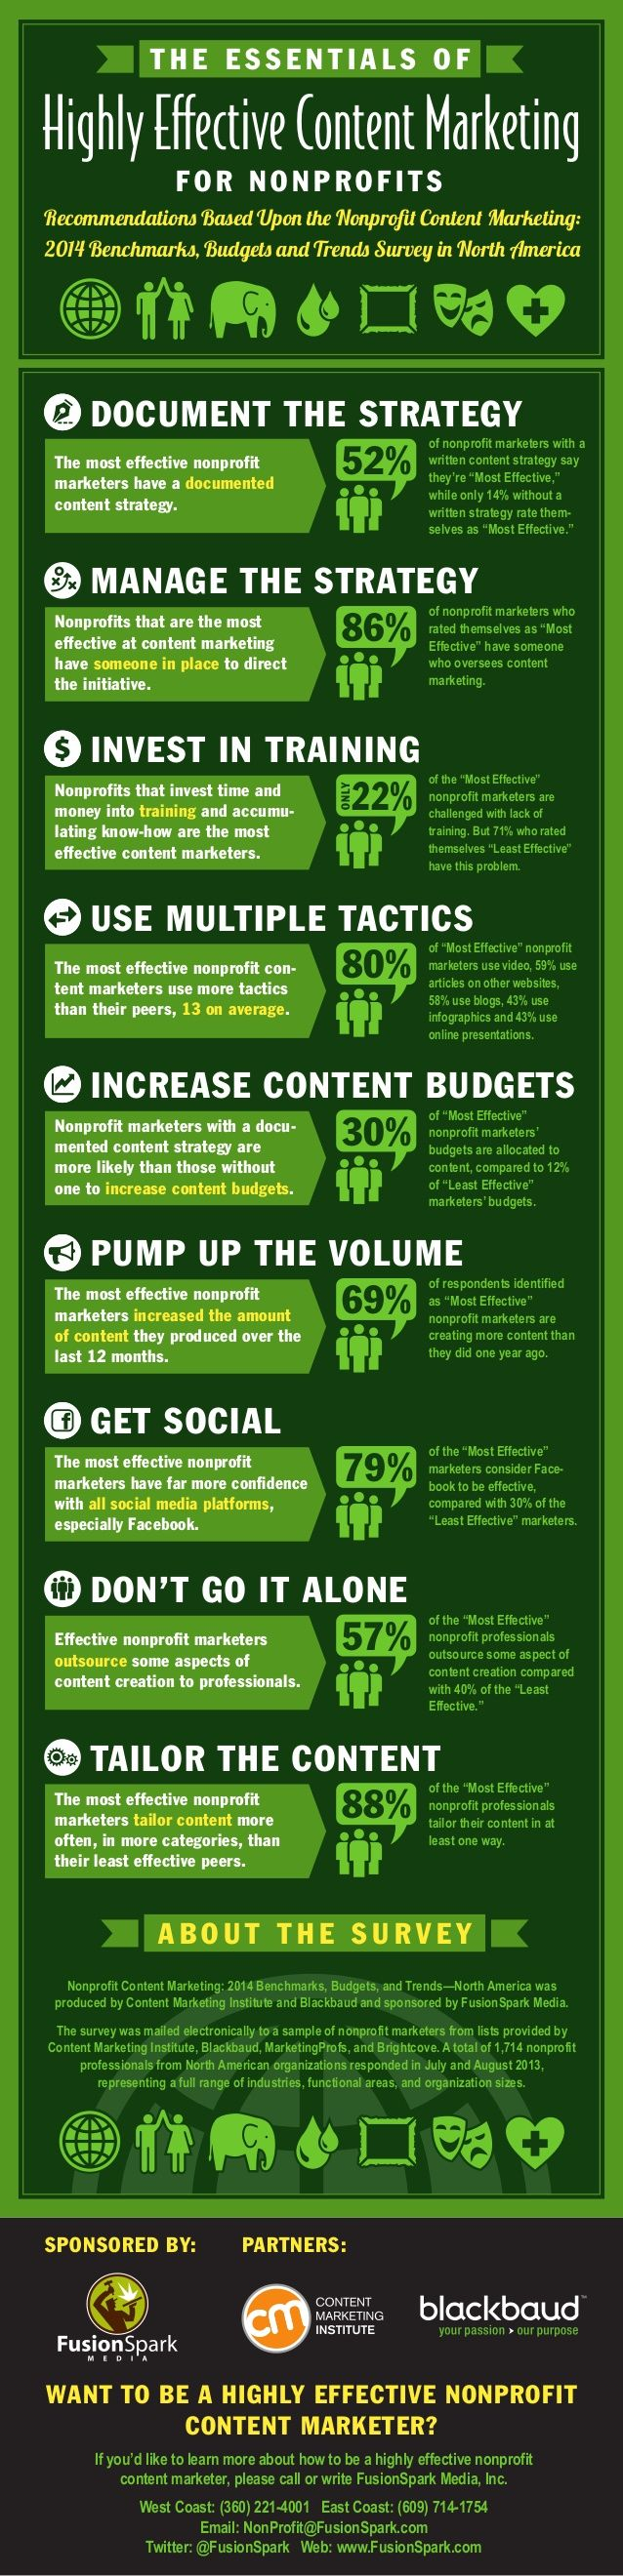 The essentials of highly effective CONTENT MARKETING for NON-PROFITS (infographic)